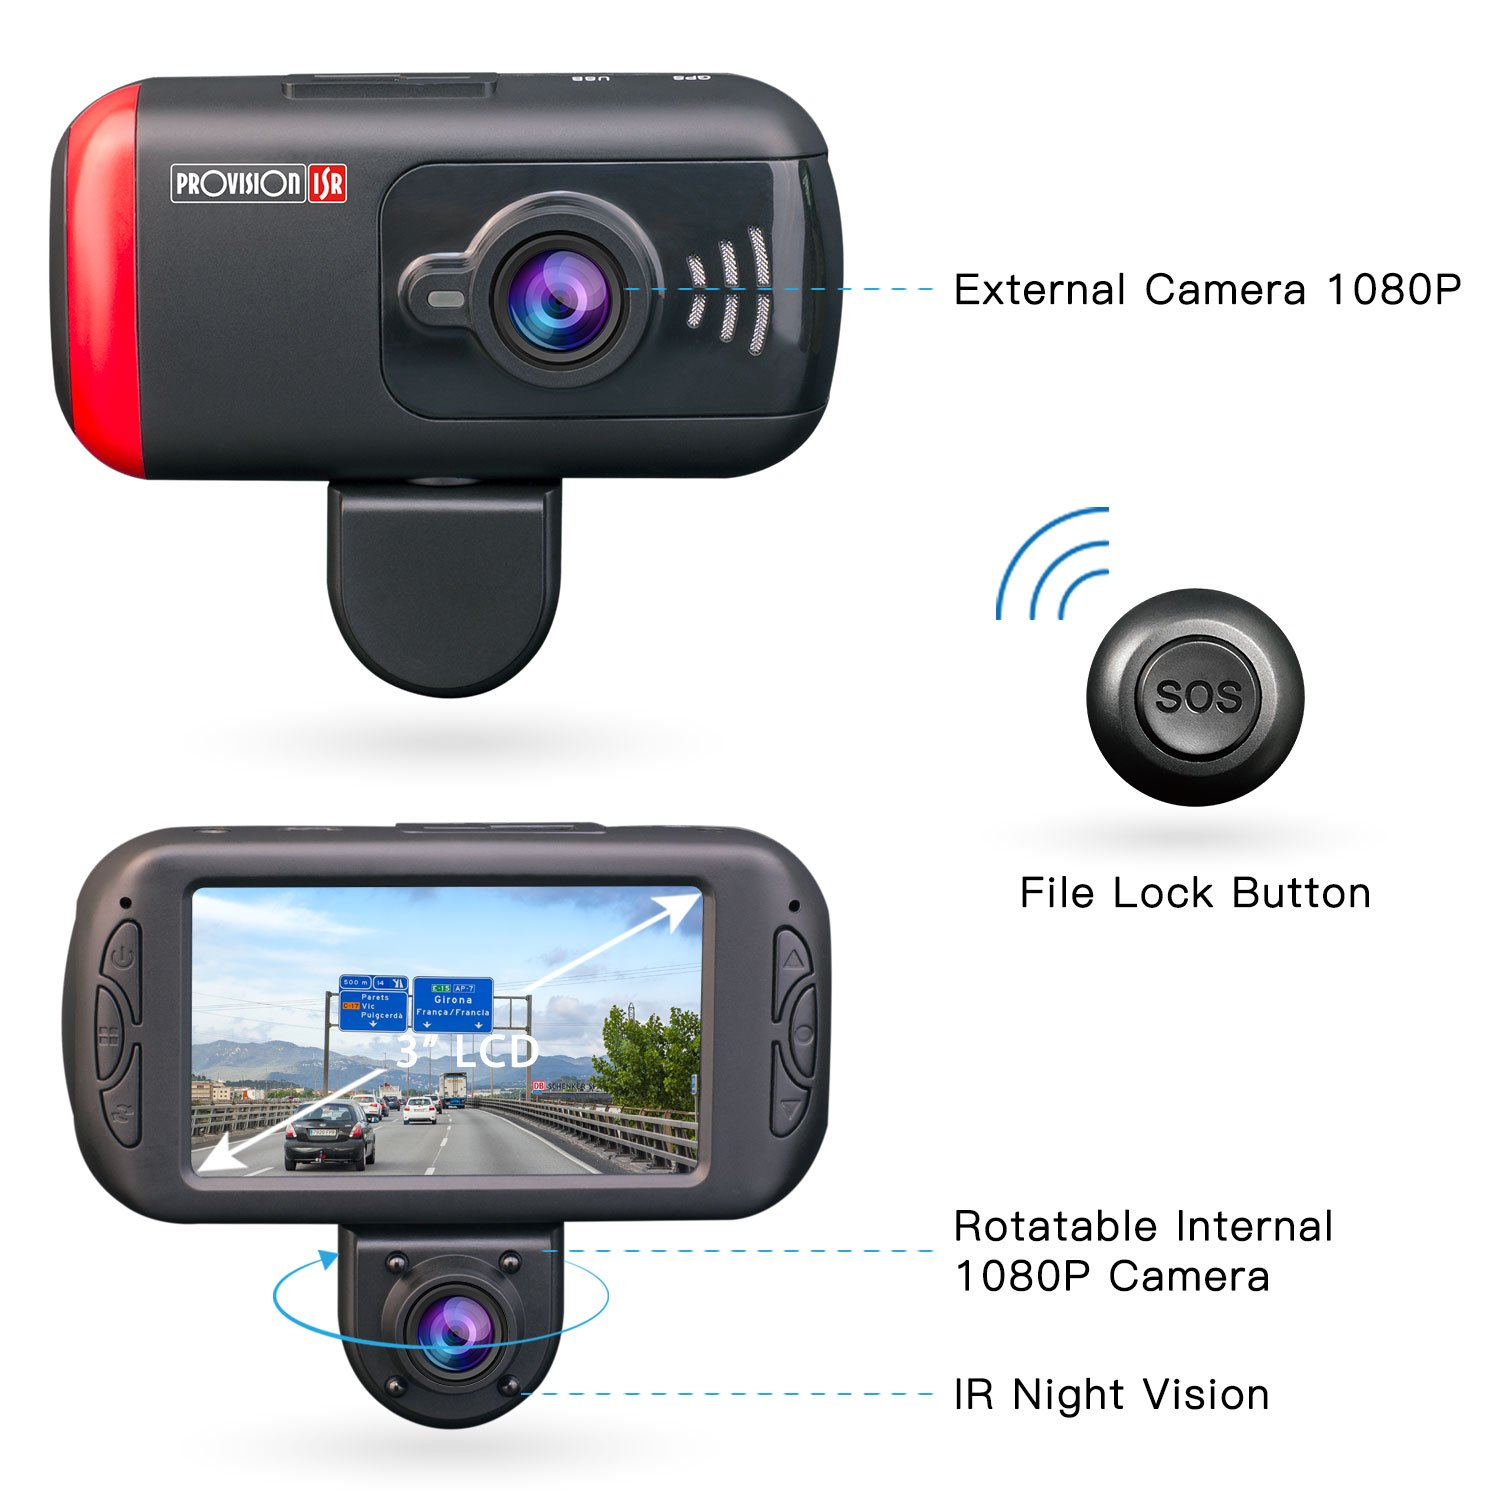 Provision-ISR Dual Dash Cam, Rotatable Inner Camera, Night Vision, Wireless SOS Button Included, Supports 64GB Memory Cards, Full HD 1080p, for Rideshare Drivers, Parking Guard, G Sensor